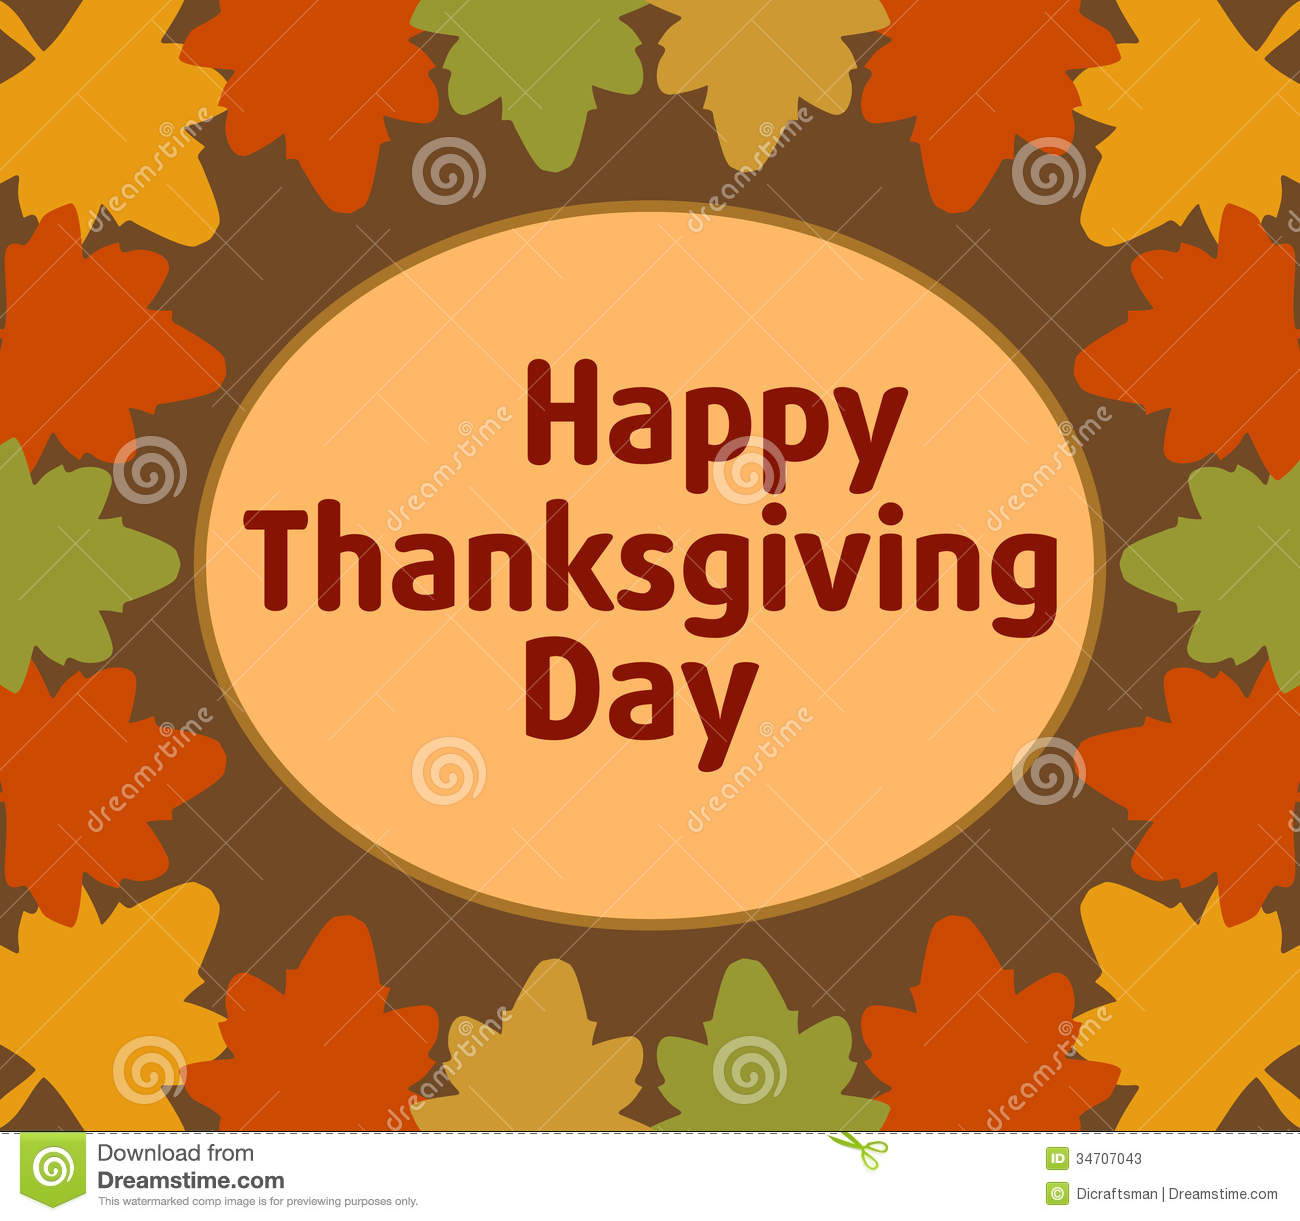 O que significa background image - Autumn Thanksgiving Day Background Stock Photos